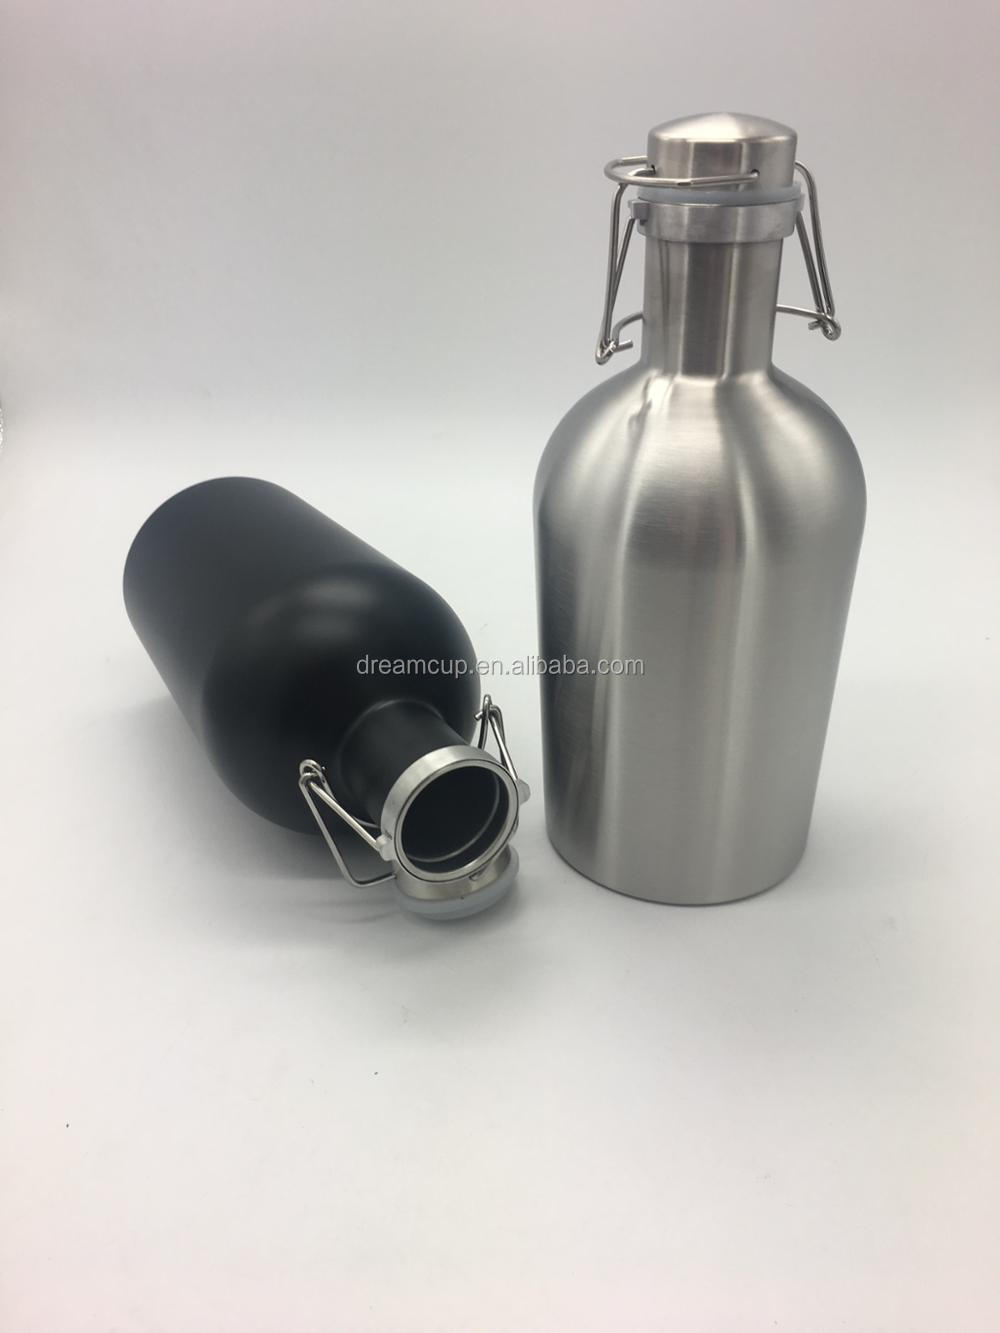 64OZ stainless steel double wall vacuum Insulated Beer Growler